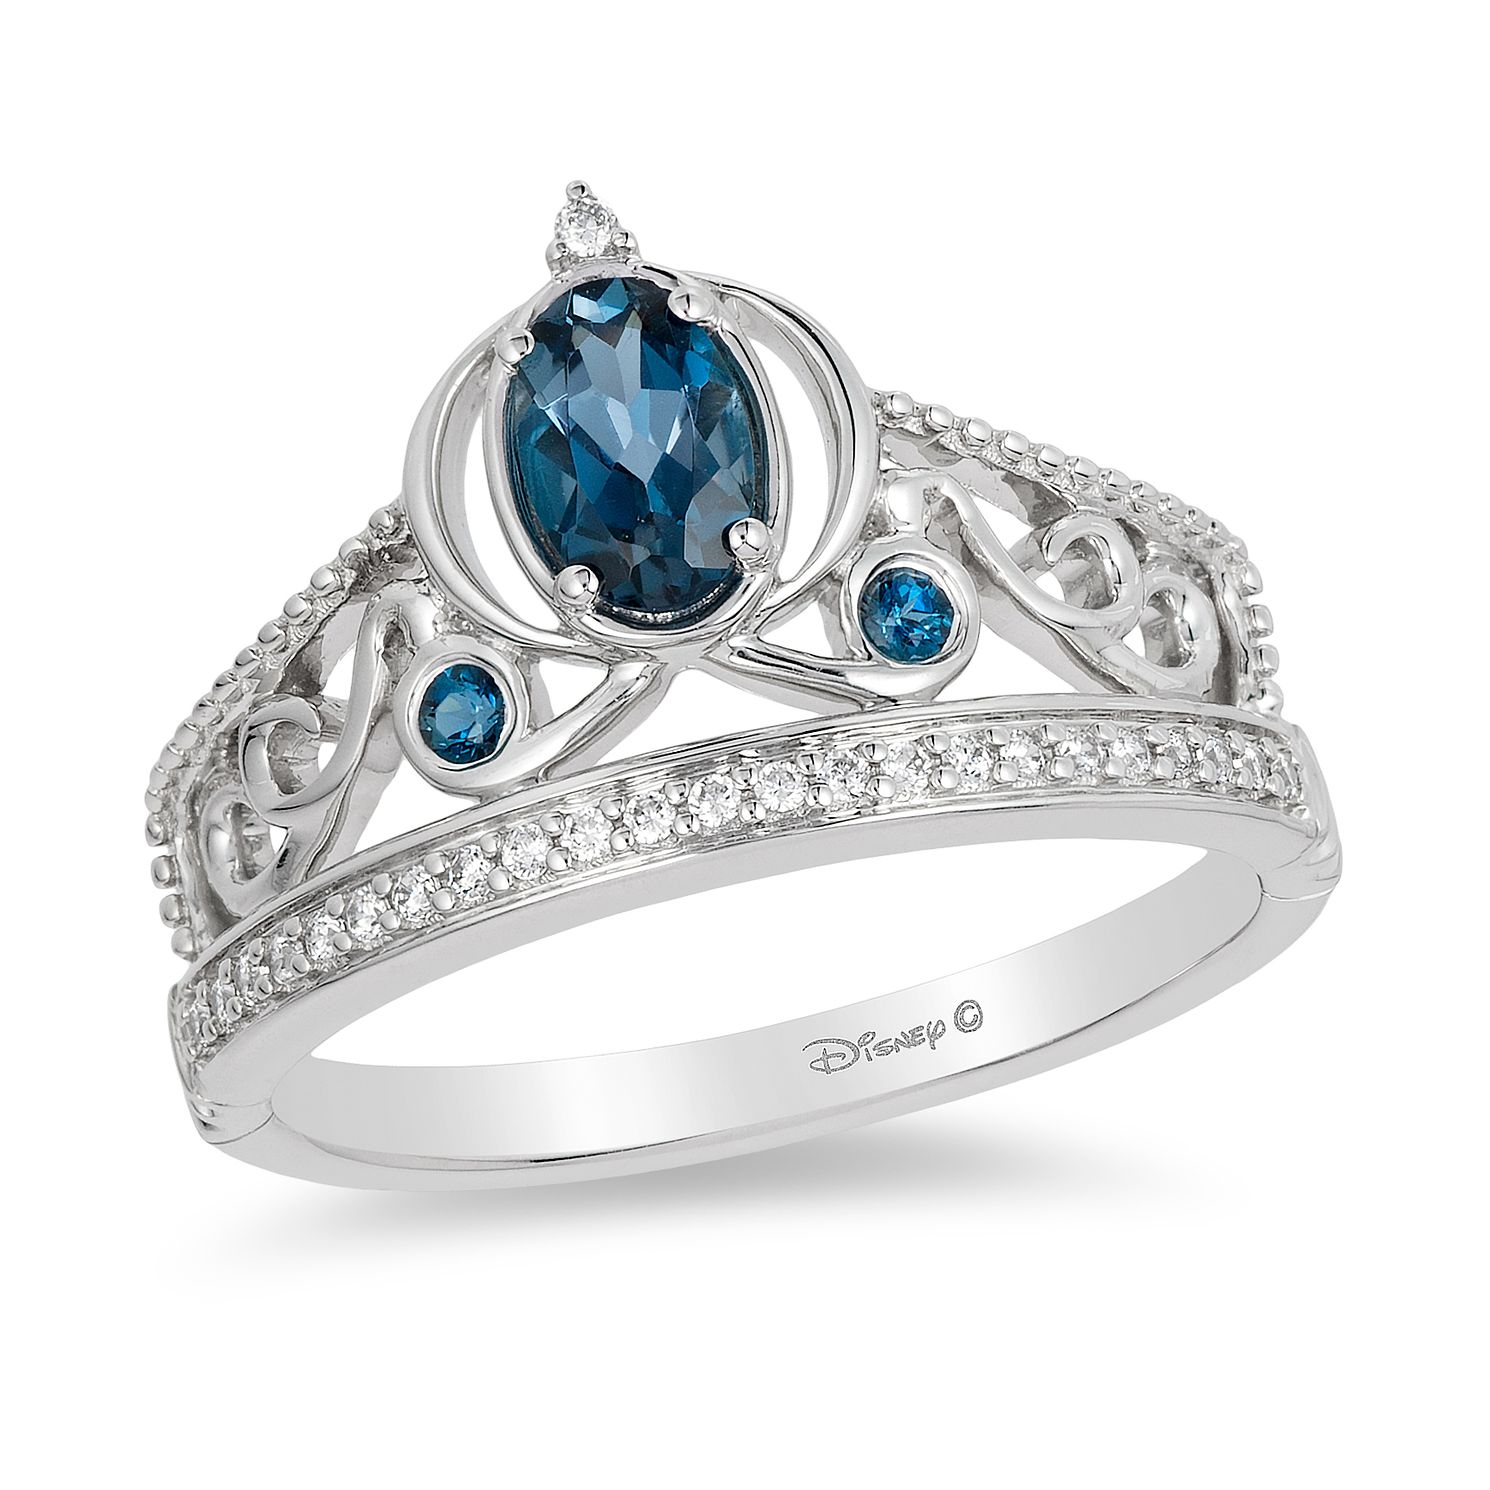 jewelry london engagement enchanted fine and ring disney topaz cinderella carriage rings diamond s blue